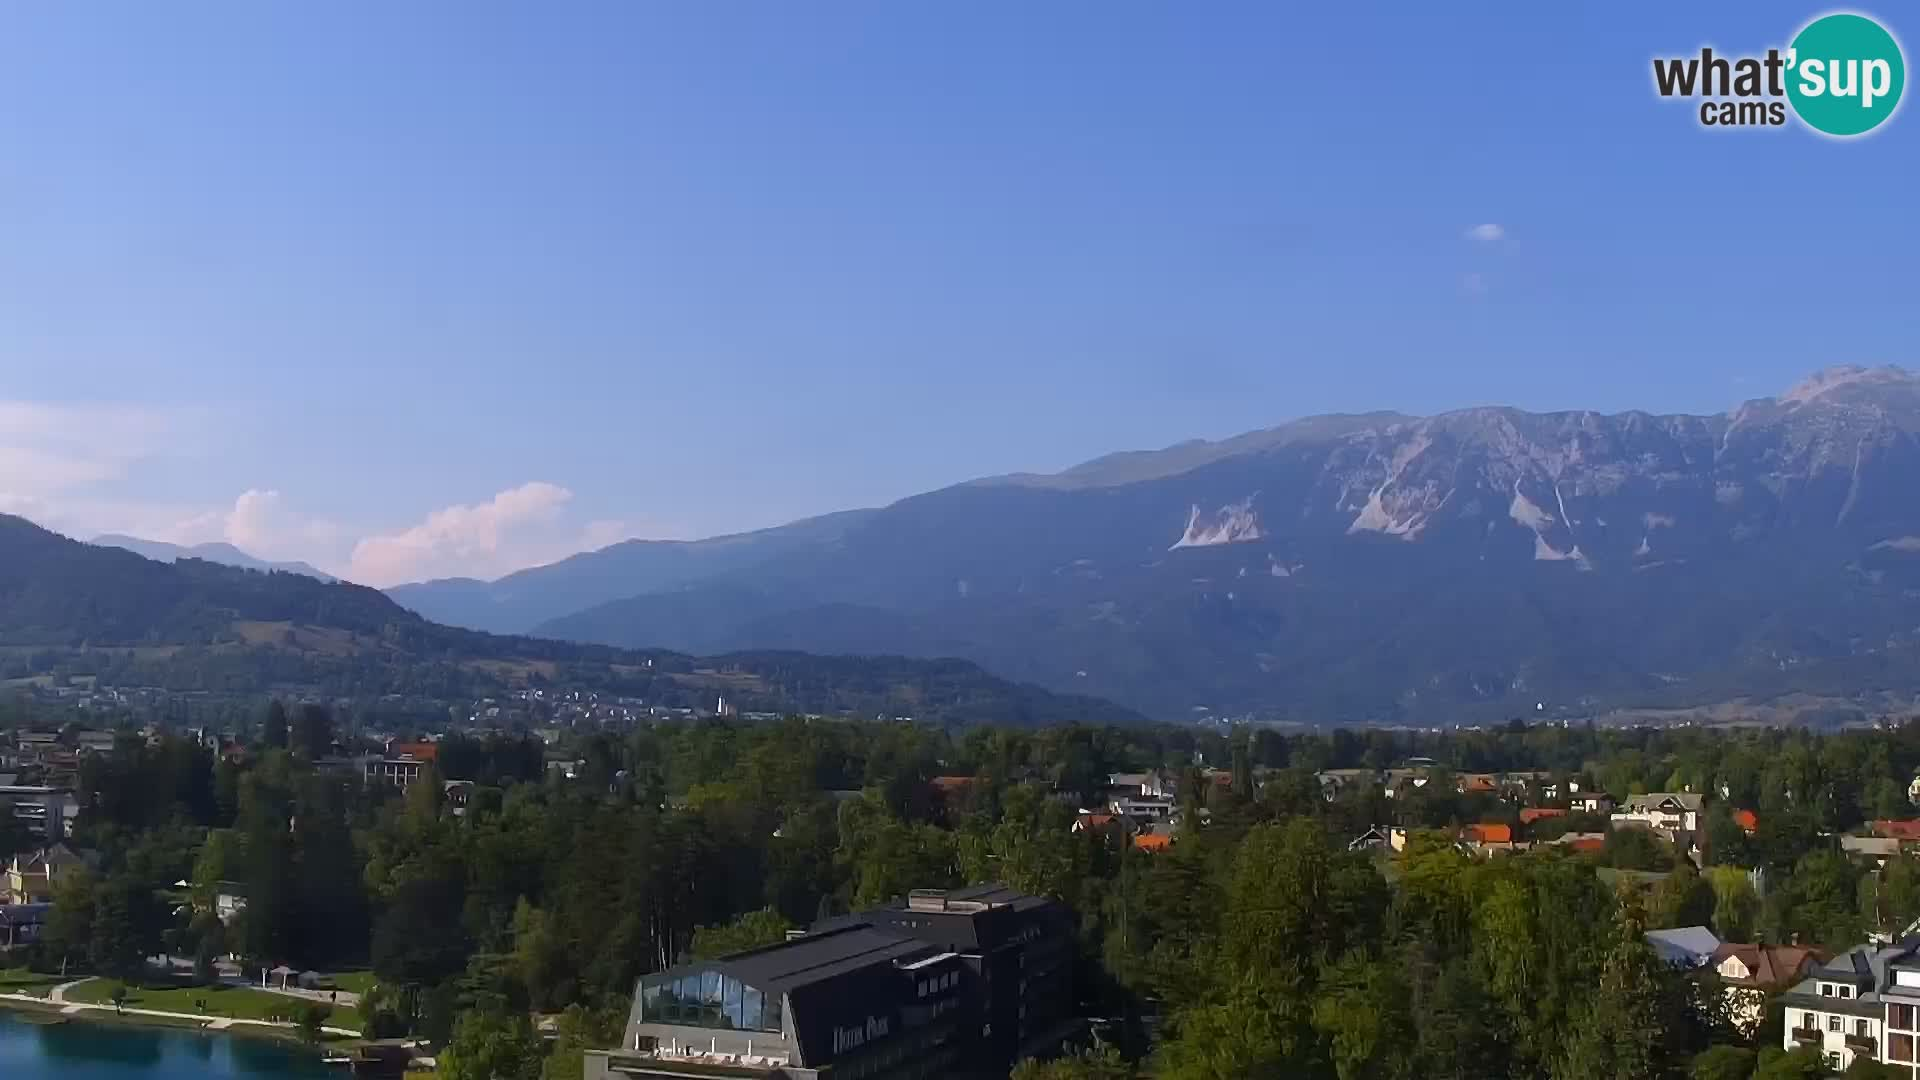 Panorama des Sees Bled